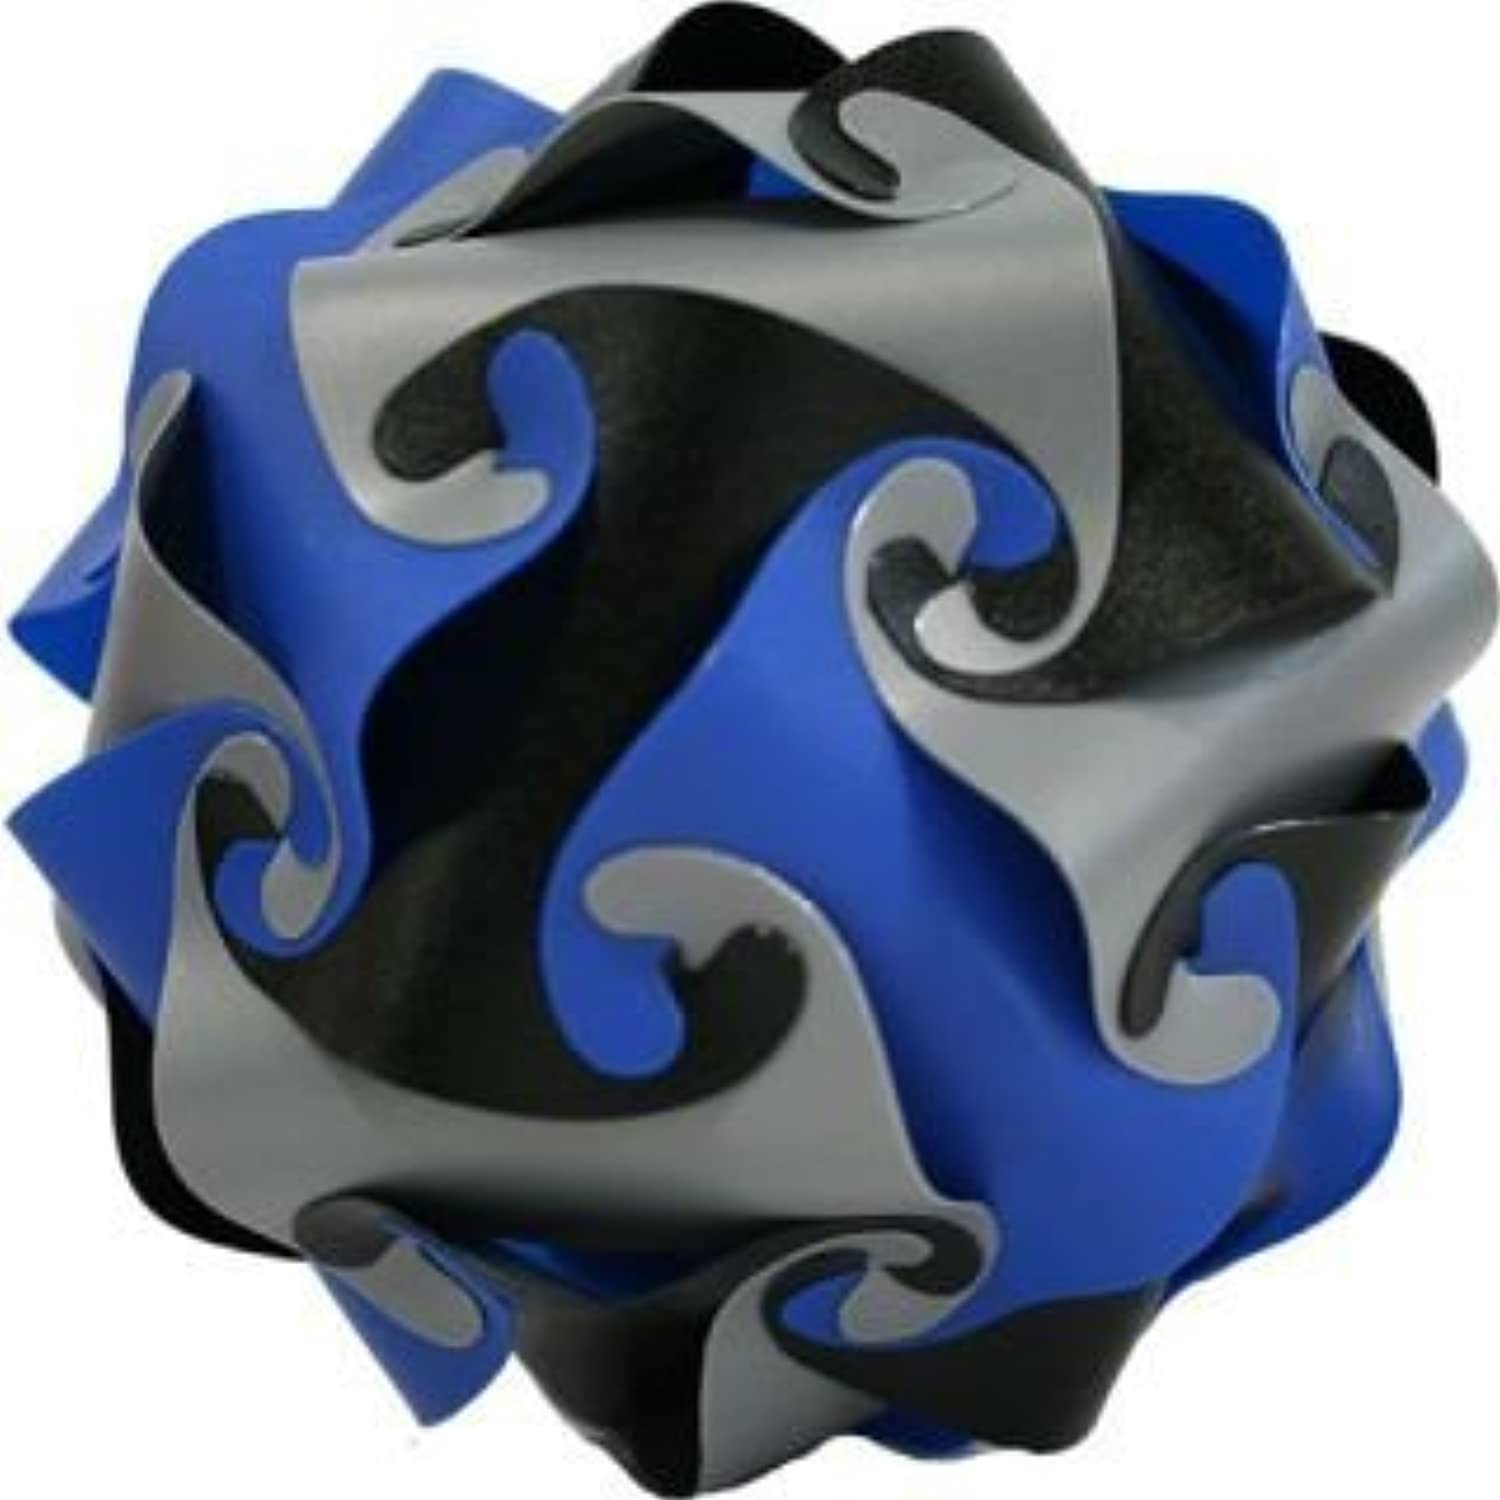 Cyclone Puzzle - blu, nero, argento by The Lagoon Group